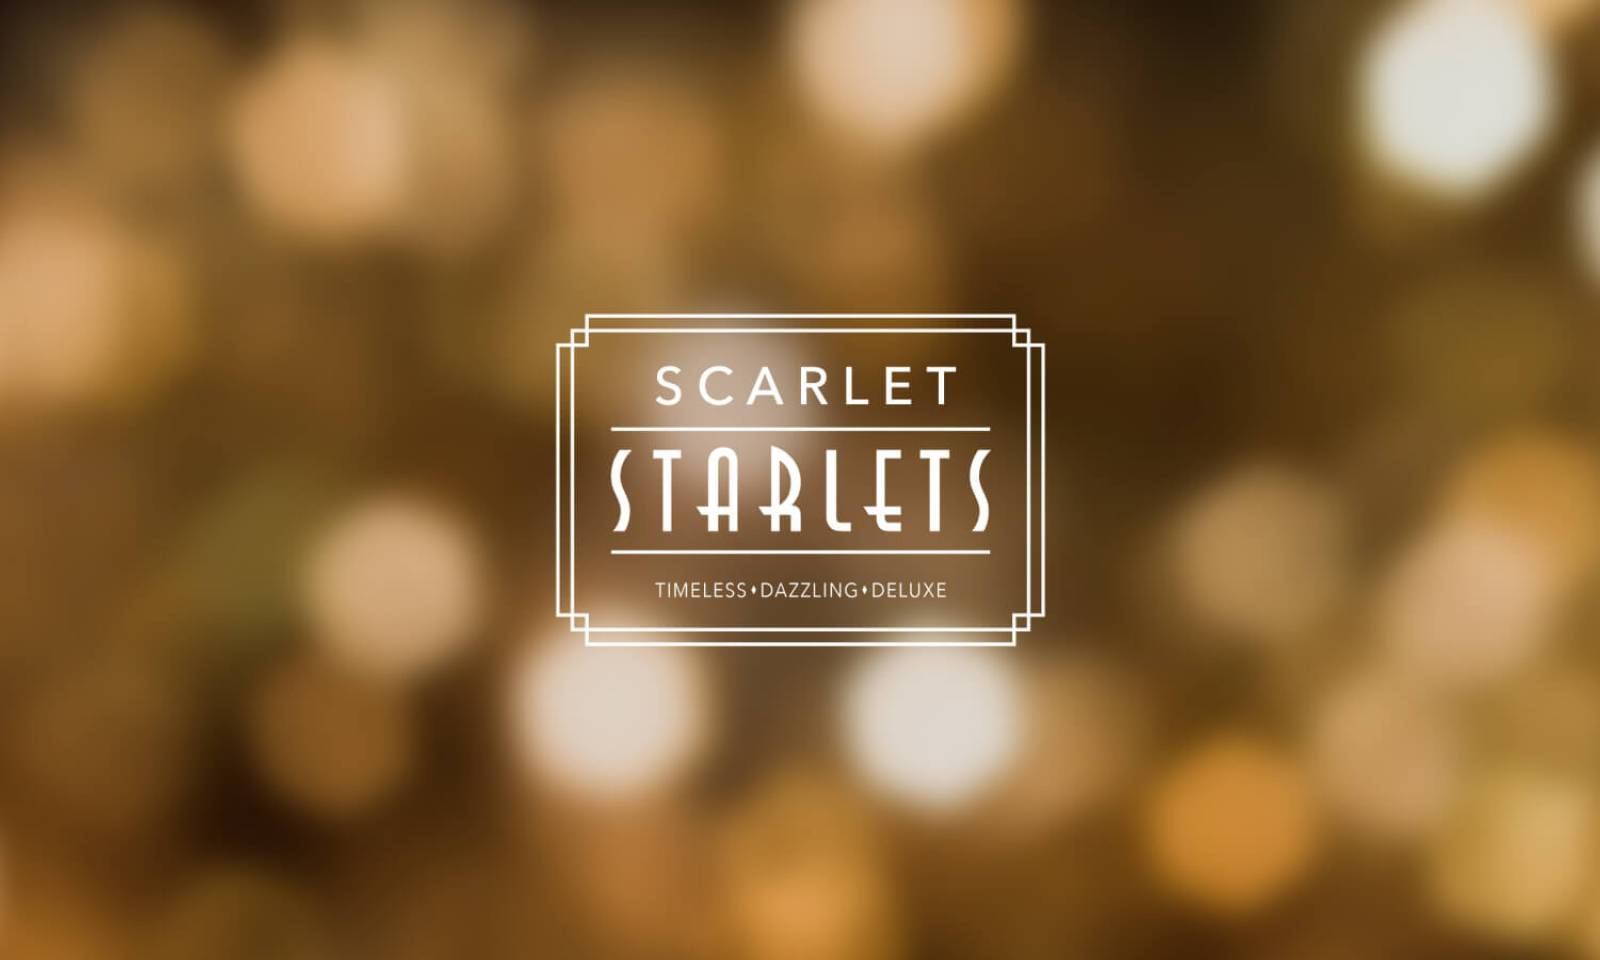 logo-Scarlet-corporate-identity-agency-graphic-design-canterbury.jpg